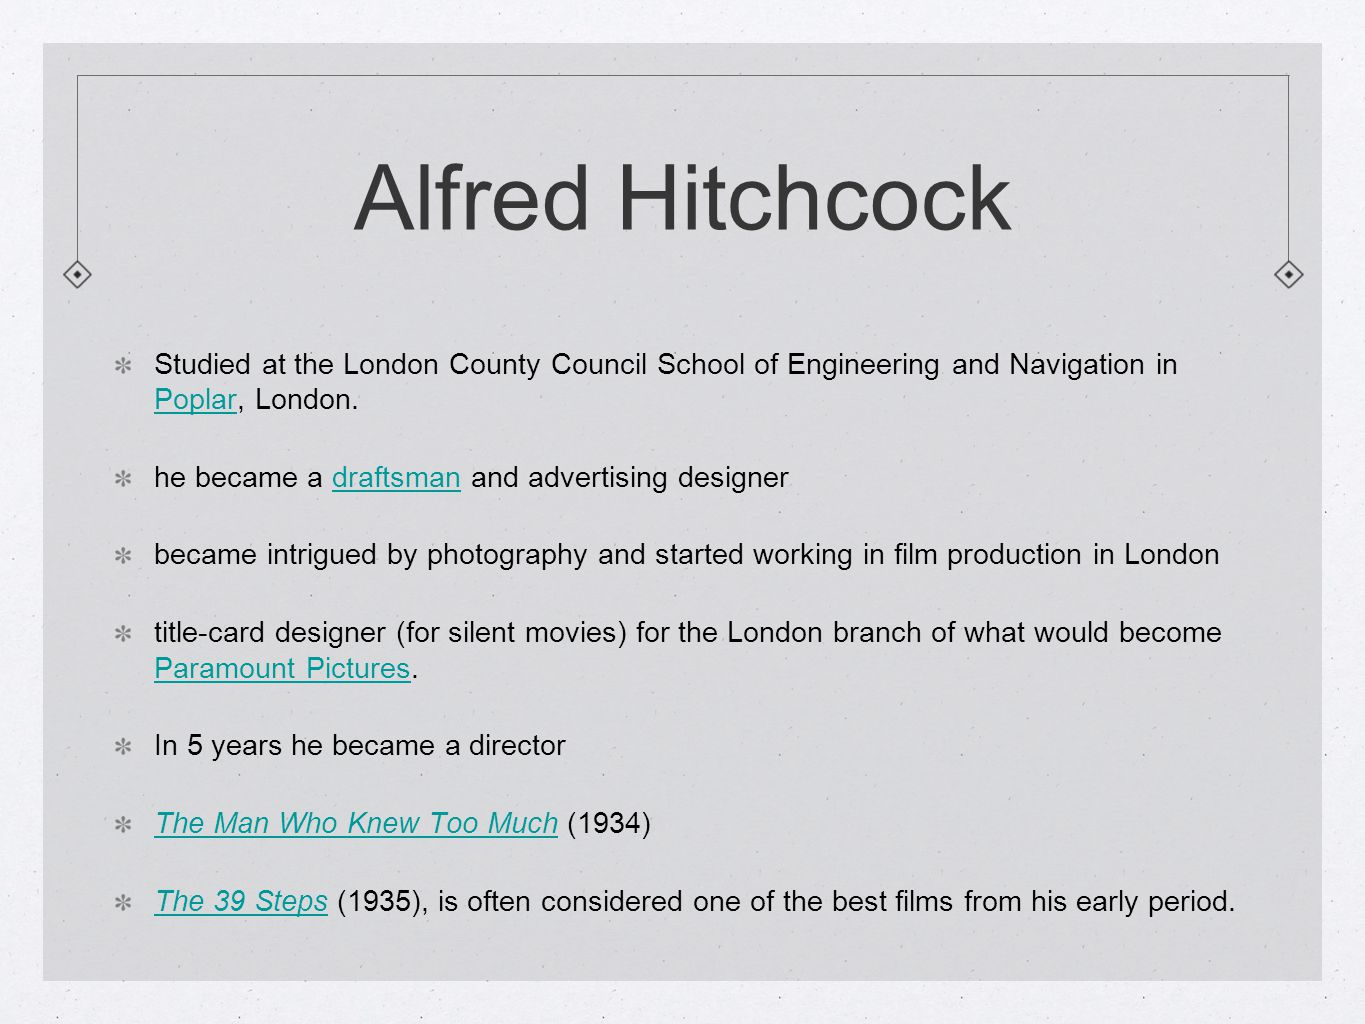 Alfred Hitchcock Studied at the London County Council School of Engineering and Navigation in Poplar, London.